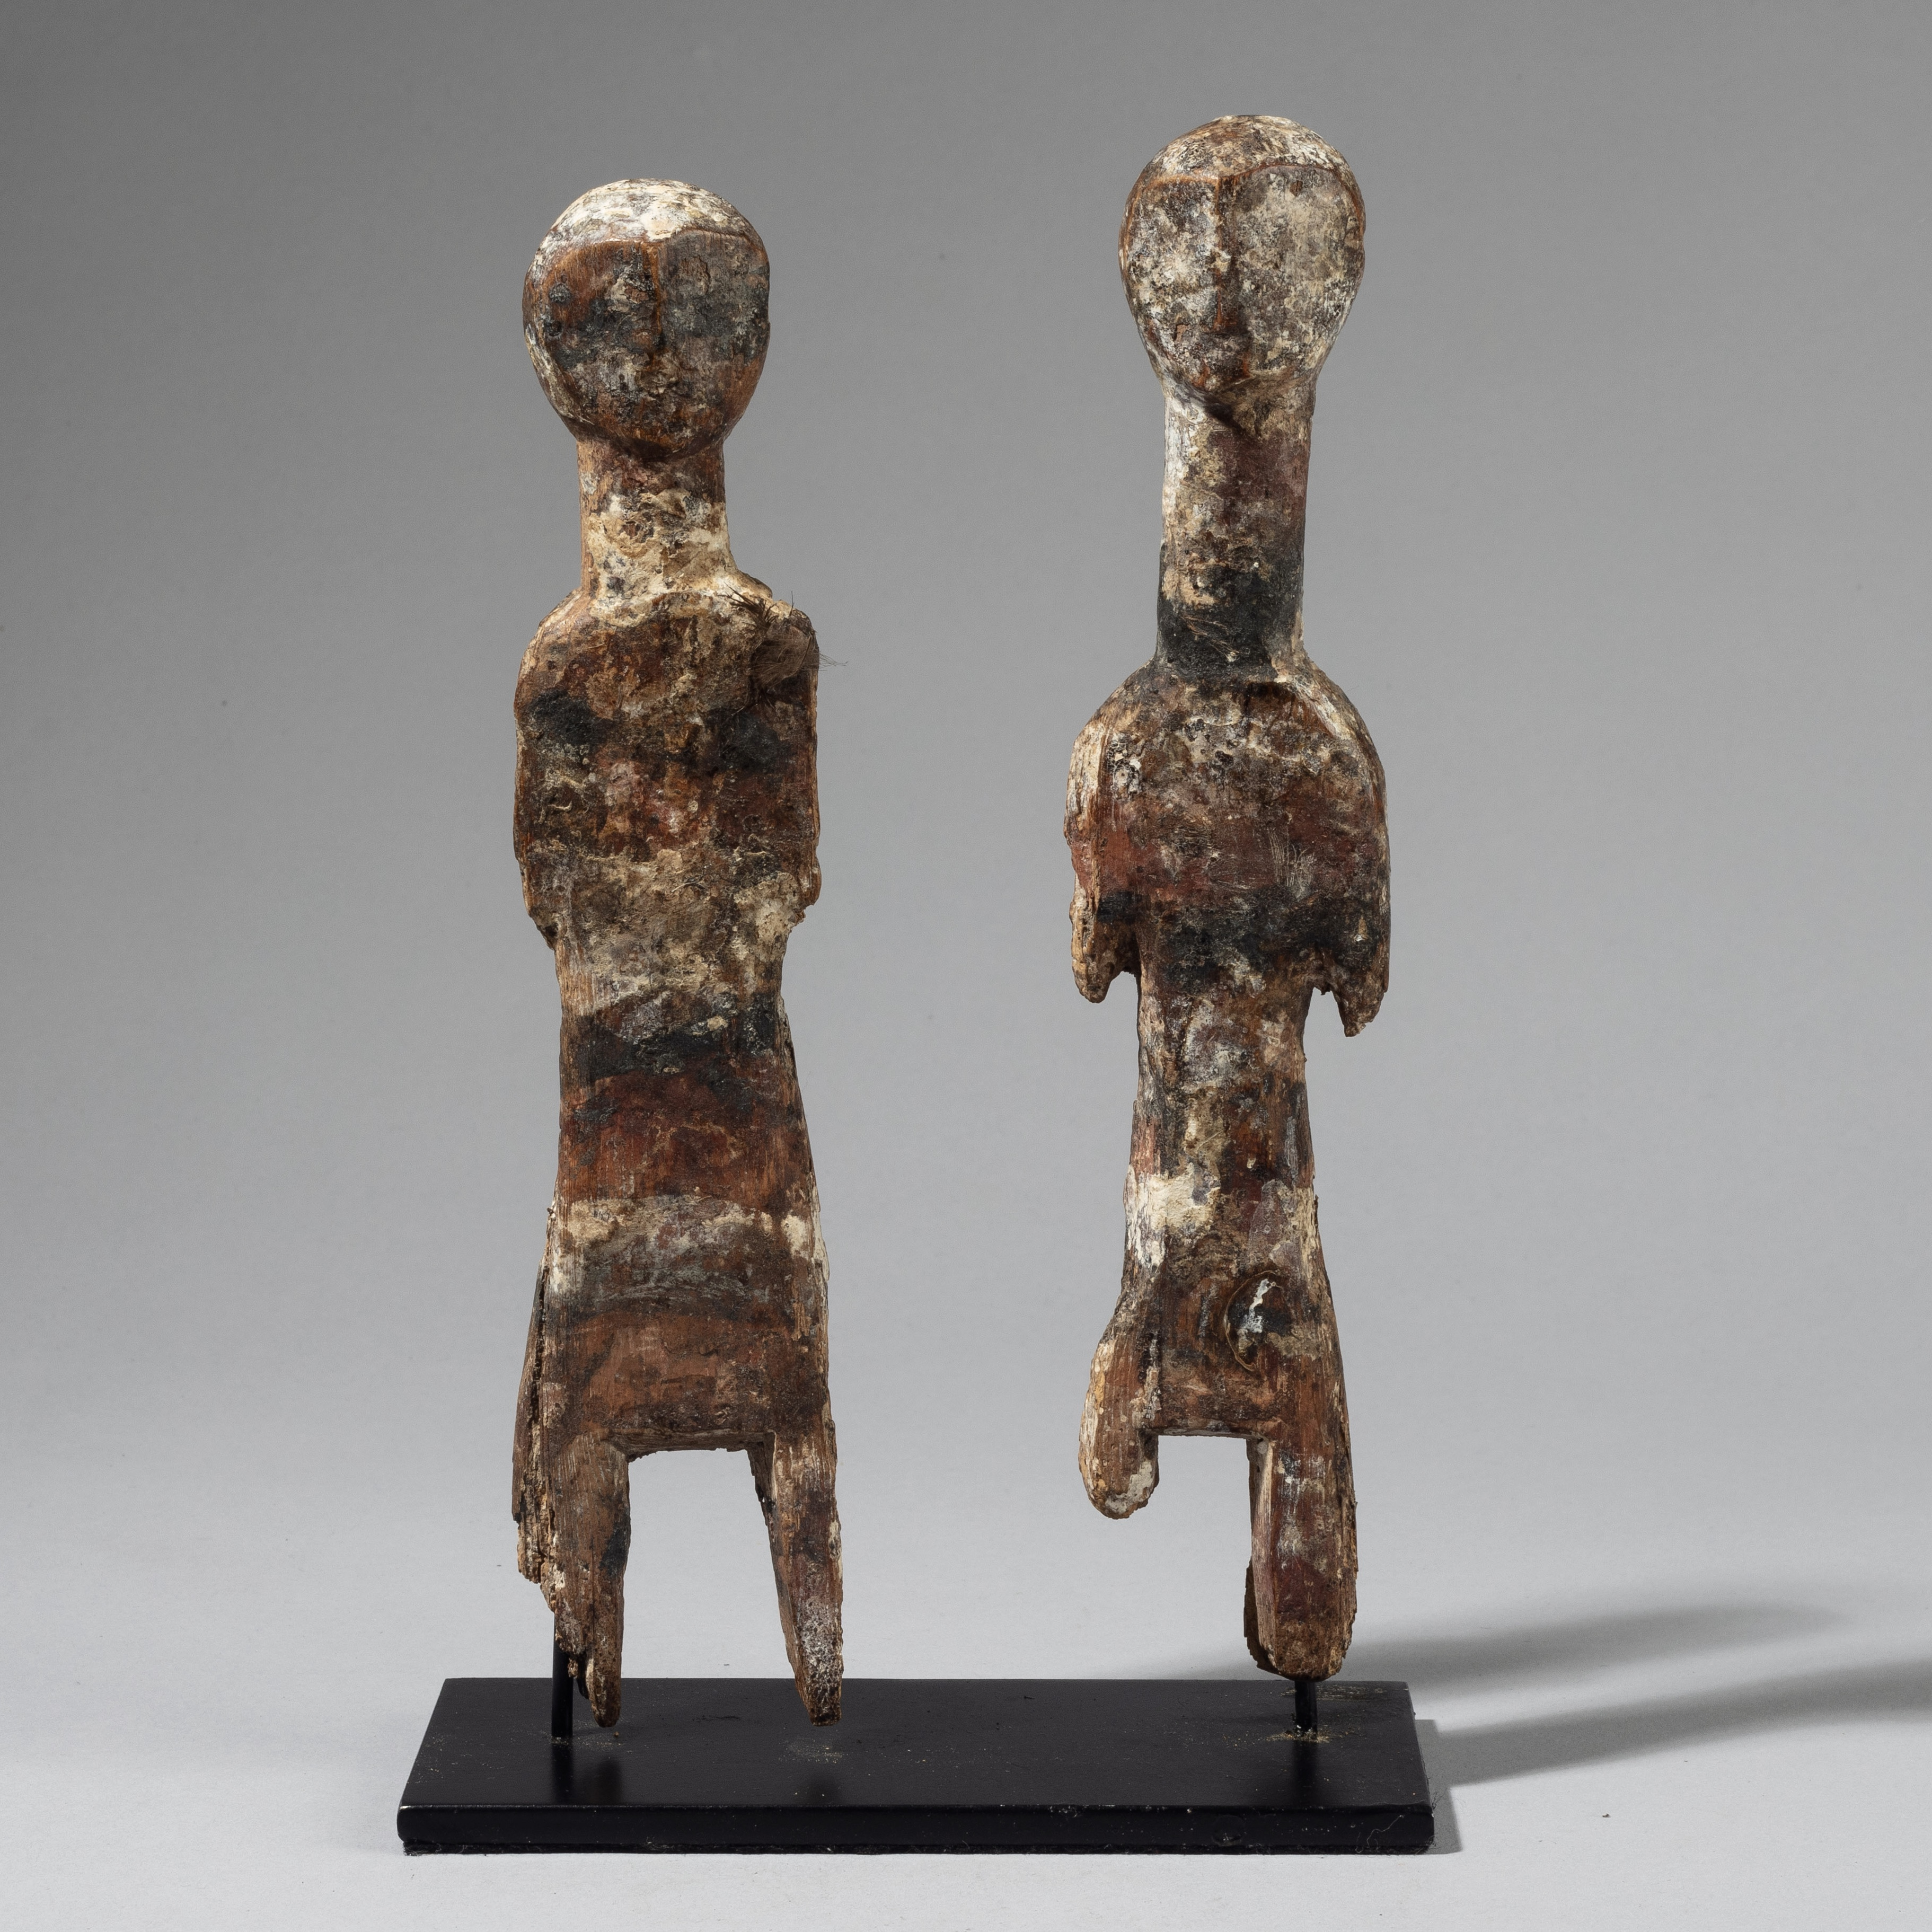 A TALL PAIR OF STRIPED ADAN ANCESTOR  FIGURES FROM GHANA W AFRICA ( No 4229)